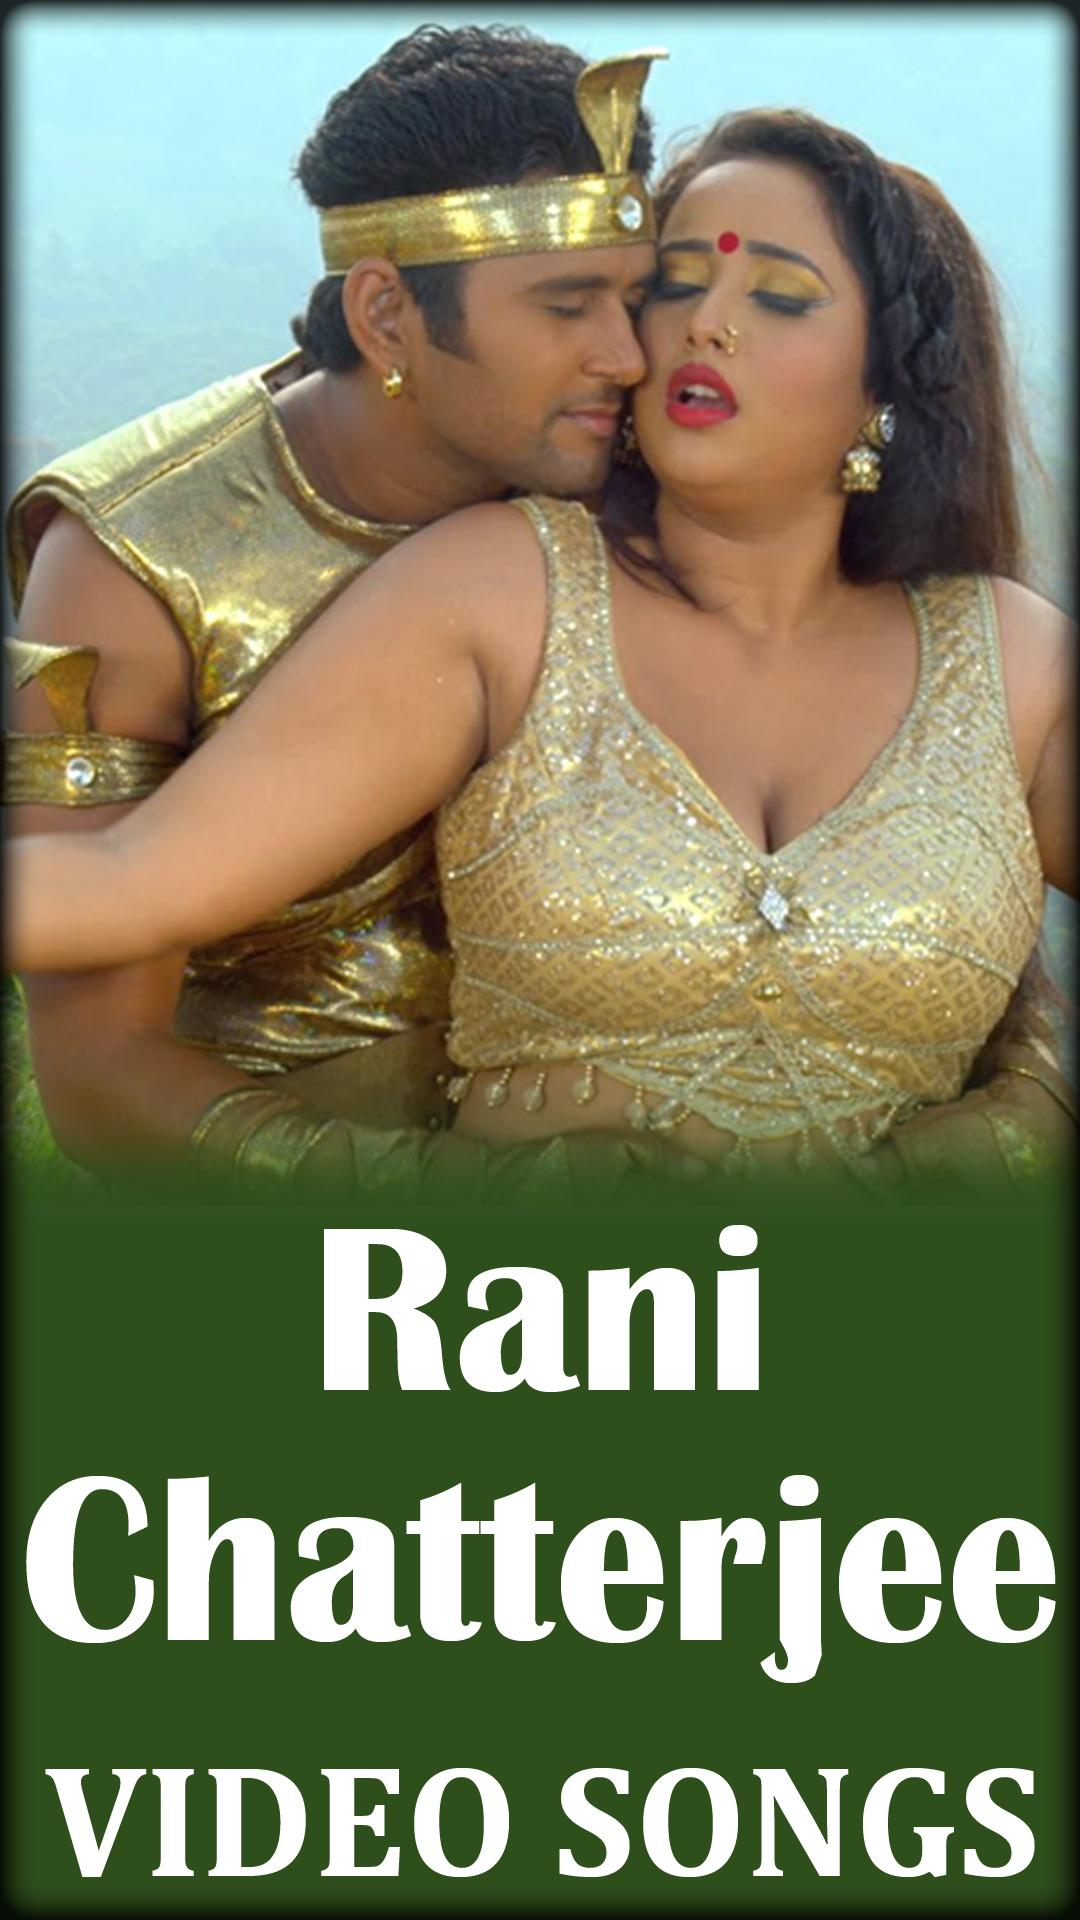 Rani Chatterjee Songs - Bhojpuri Sexy Video Song for Android